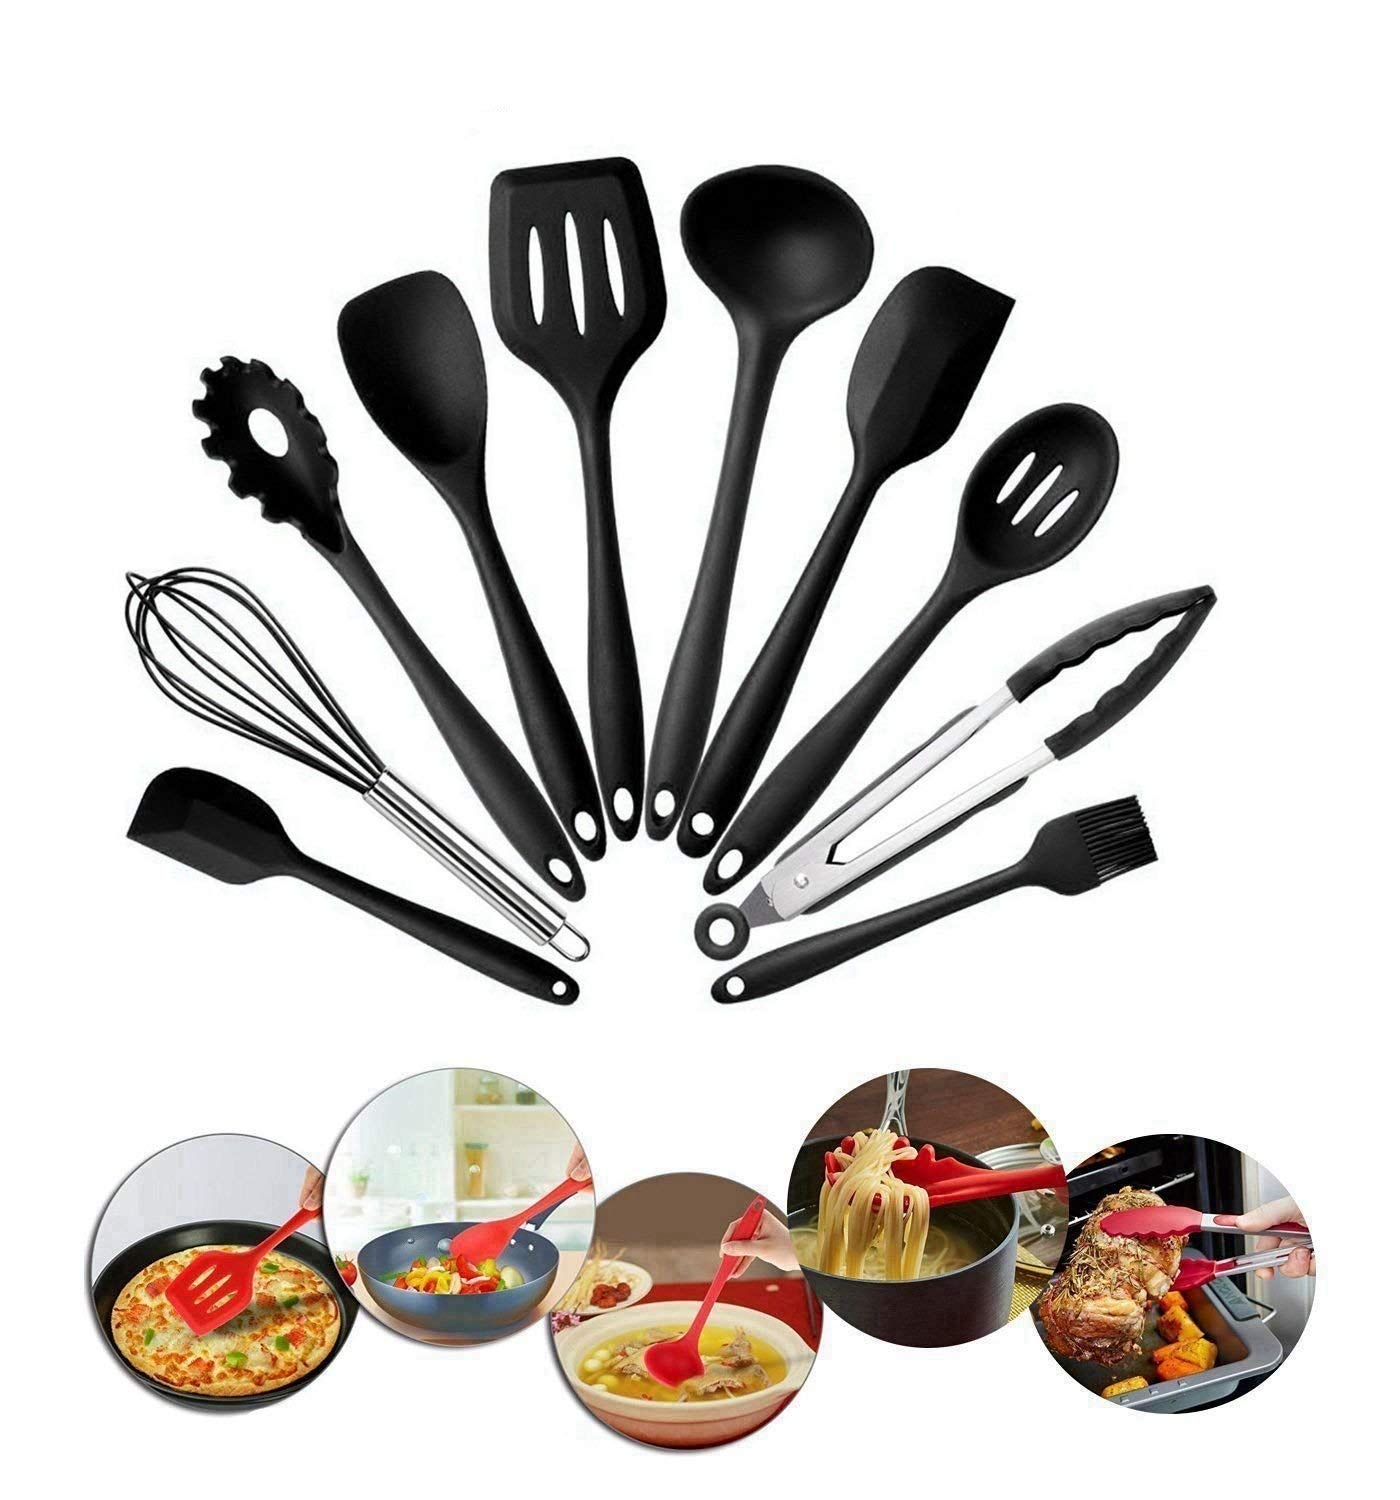 10 Piece Silicone Kitchen Utensils Set,Home Baking Cooking Tools Cookware Gadgets Contains Pasta Fork,Spoonula,Tong,Slotted Spoon,Ladle,Turner,Large Spatula,Small Spatula,Basting Brush,Whisk (Black) by Deway